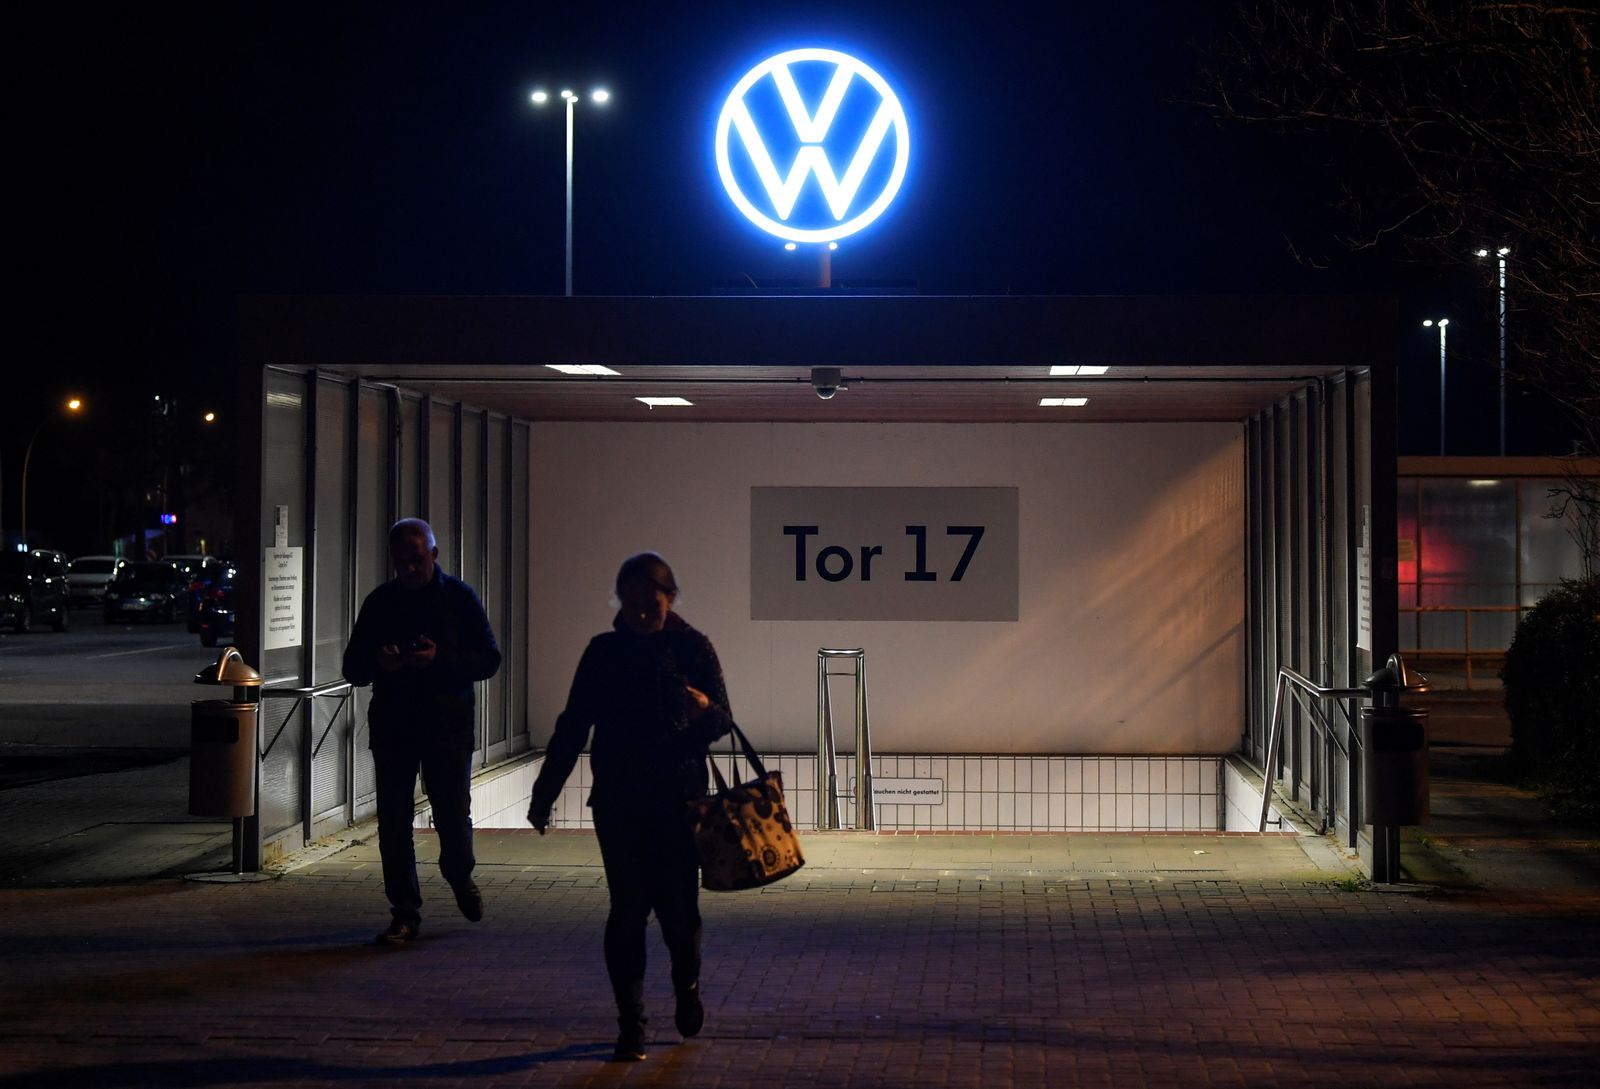 Employees leave the Volkswagen plant after VW starts shutting down production in Europe amid the outbreak of coronavirus disease (COVID-19) in Wolfsburg